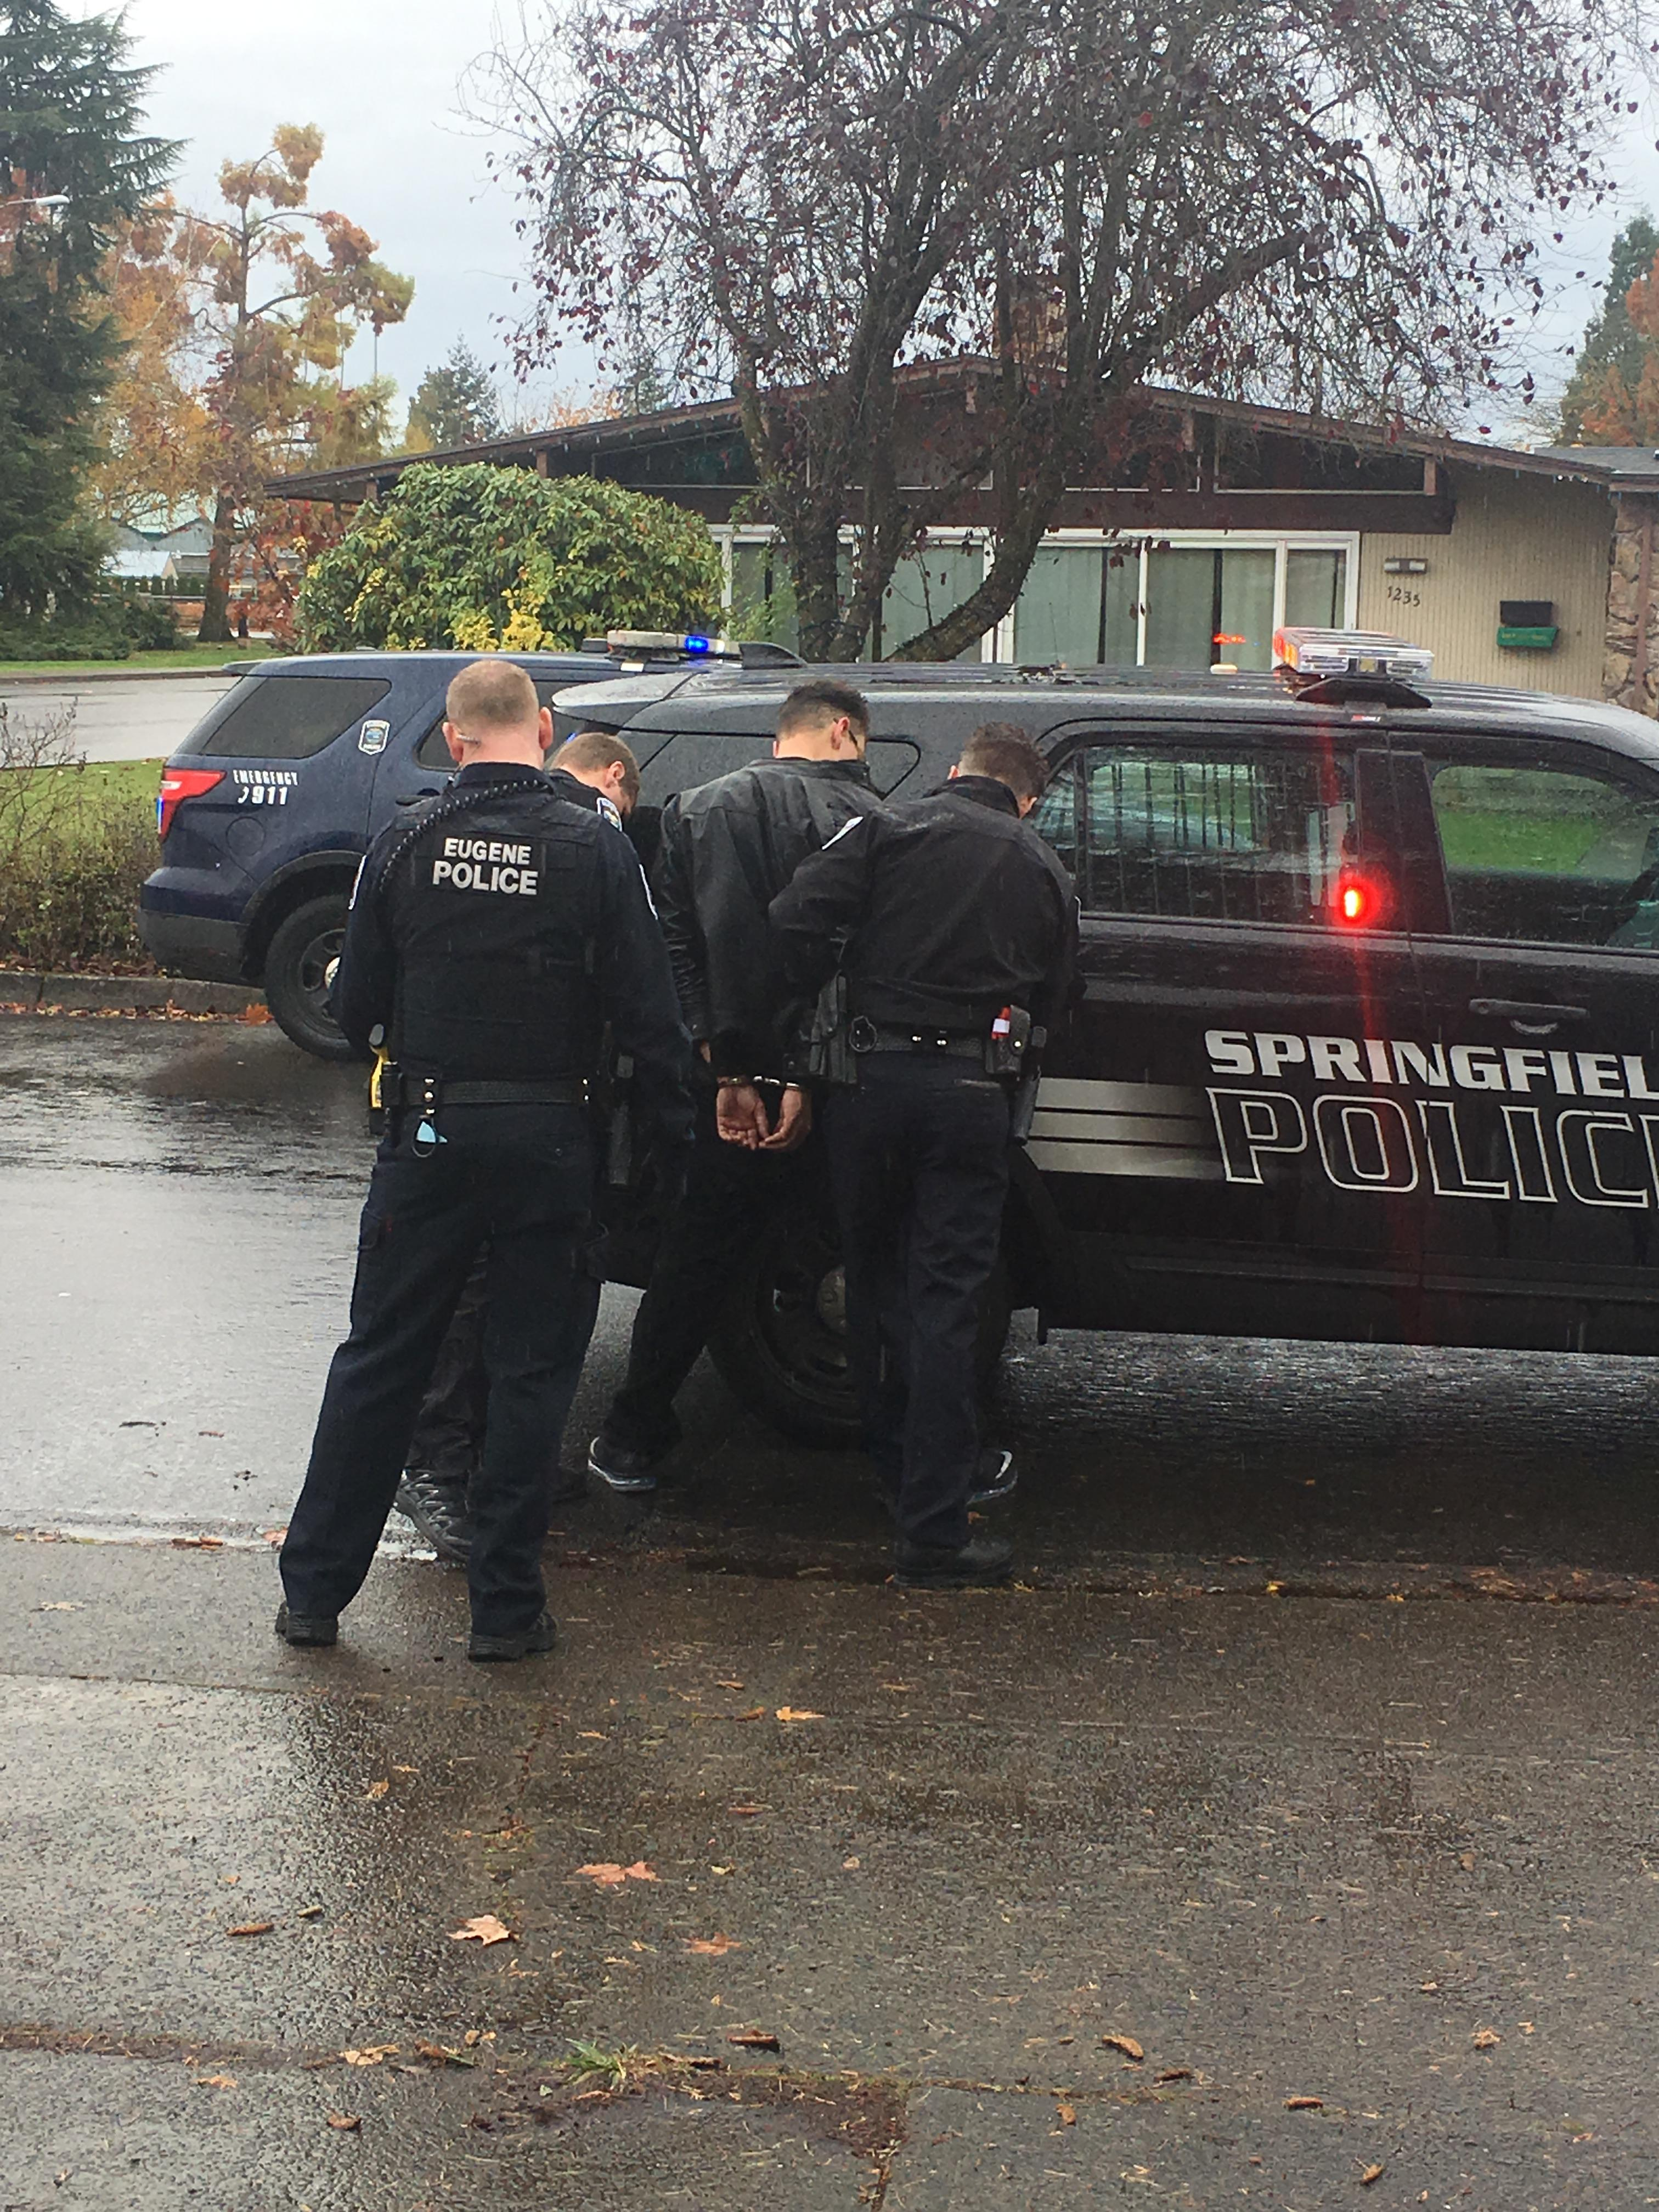 <p>Springfield Police stopped the BMW about 2 miles away at Centennial Boulevard and First Street. Officers detained two men. (SPD photo)</p>